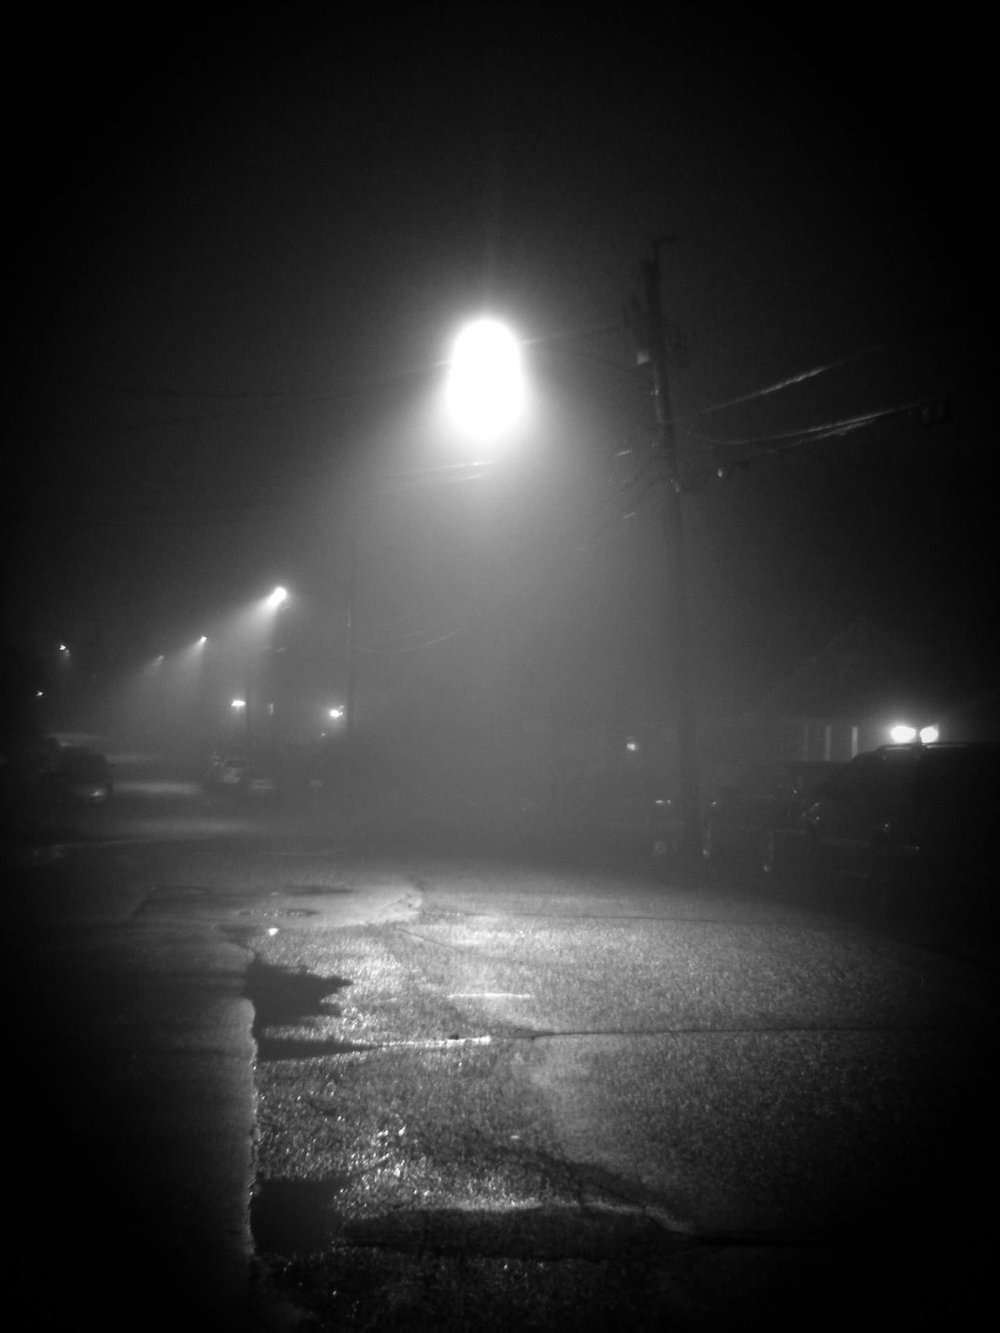 Spectres in the Fog